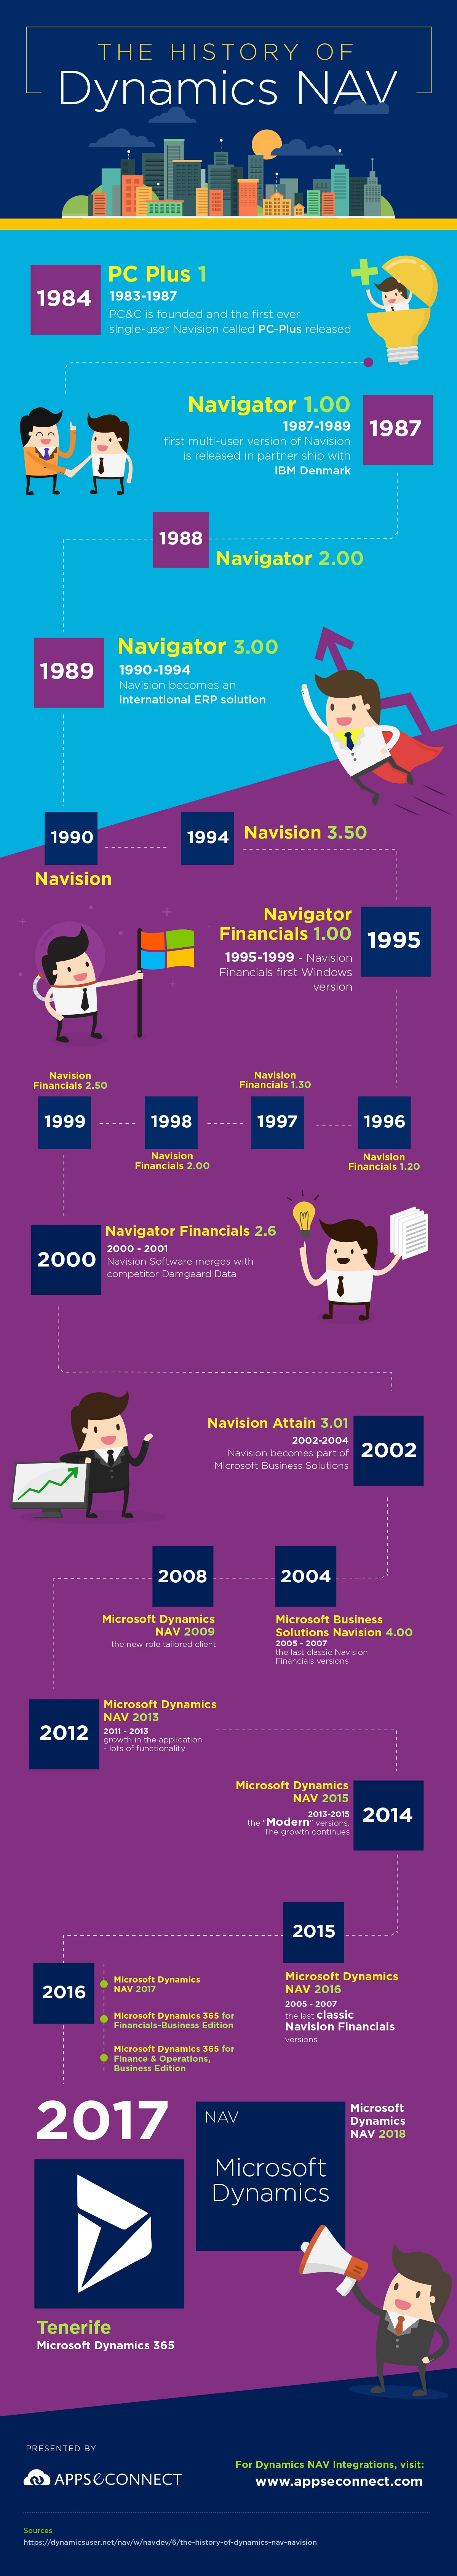 Evolution-of-Microsoft-Dynamics-Nav-Infographic